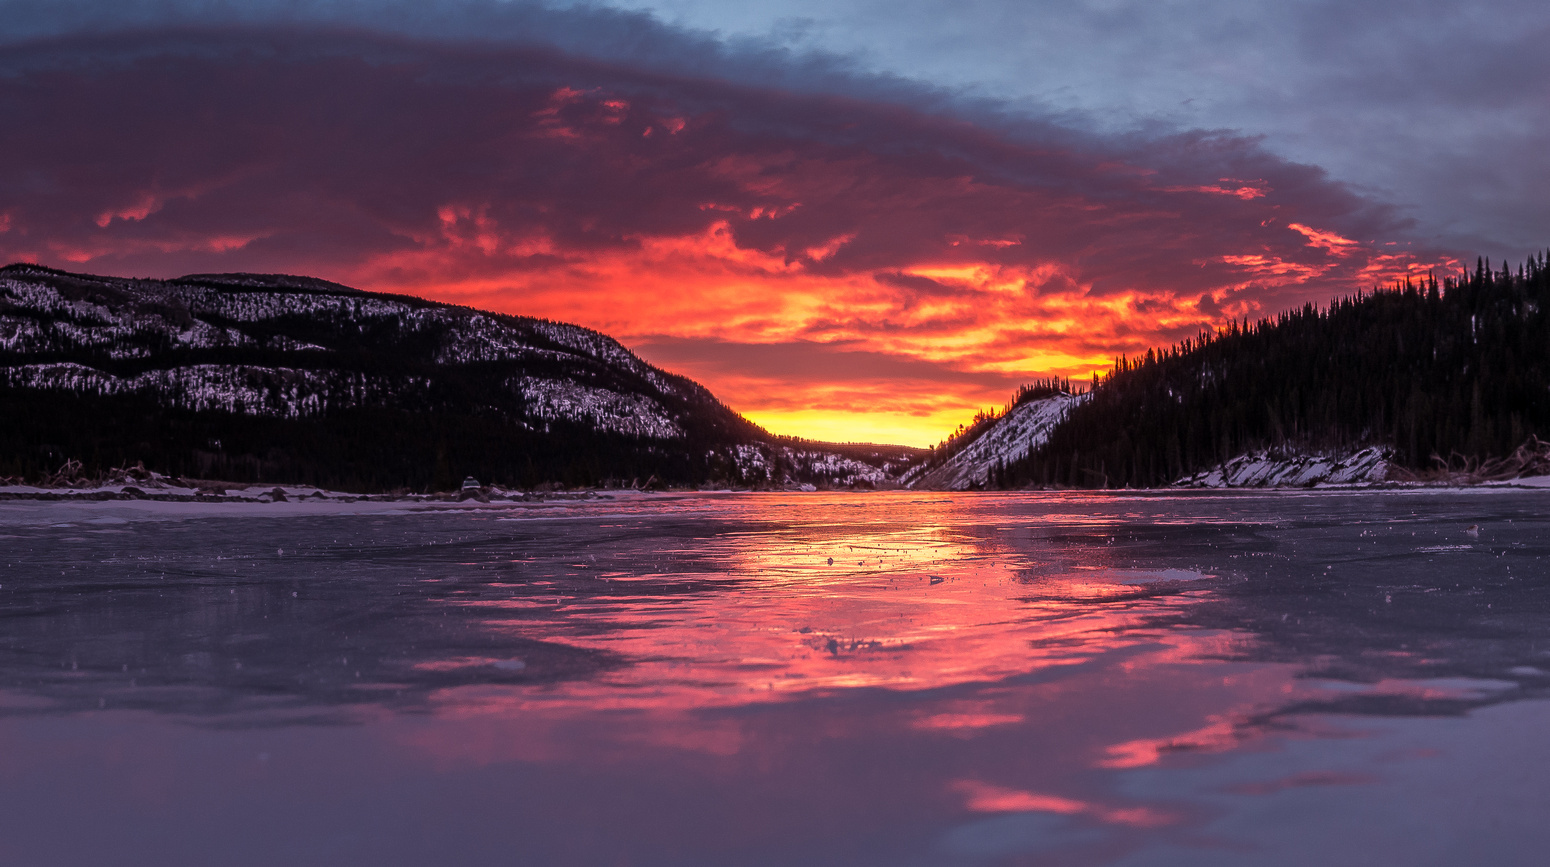 Gorgeous sunrise, looking back from our parking spot along the frozen riverbed.